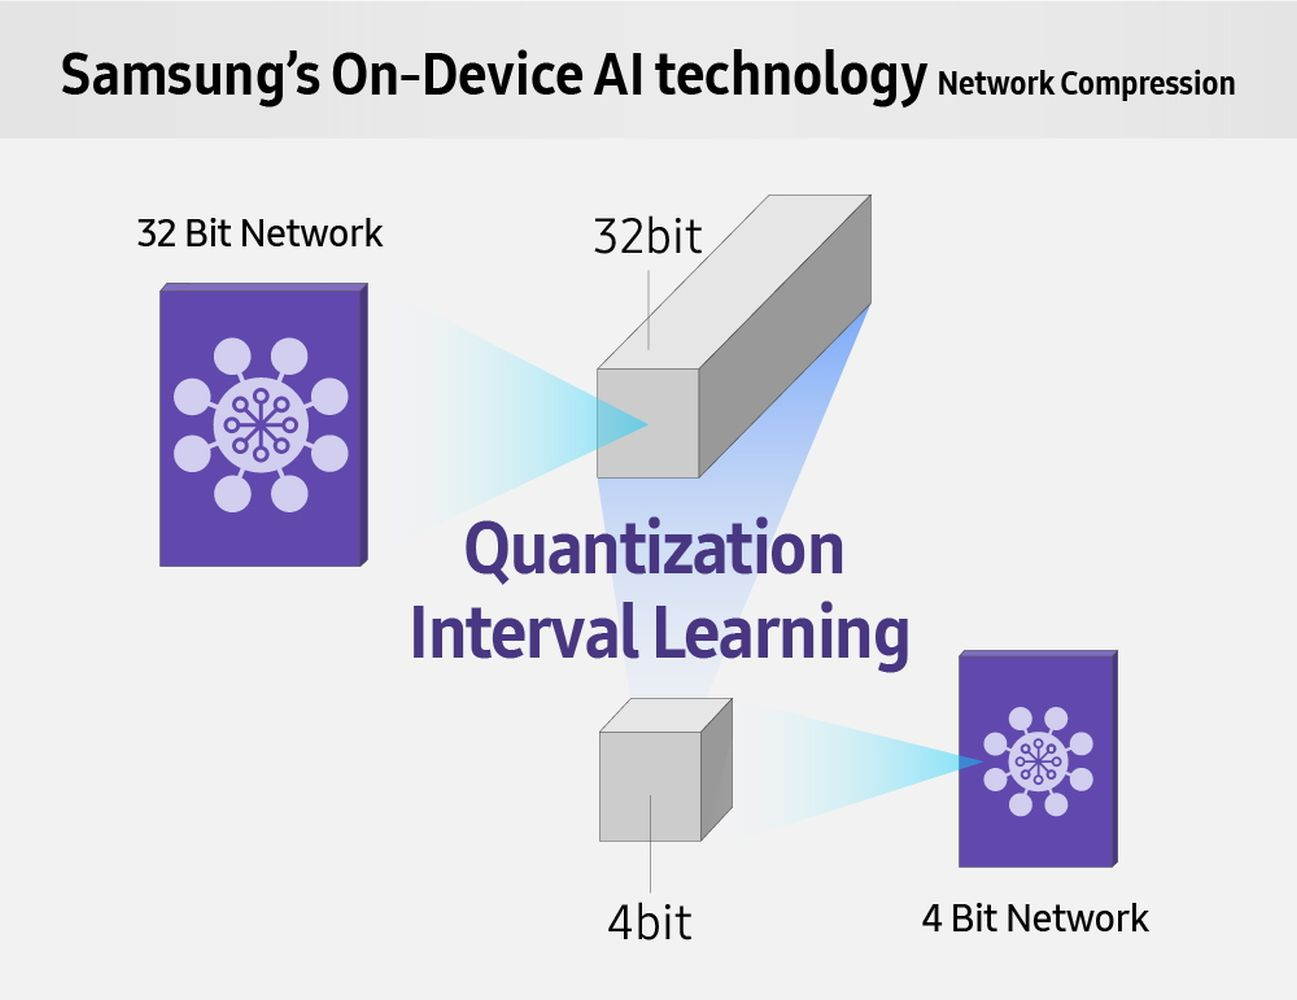 Samsung QIL (Quantization Interval Learning)